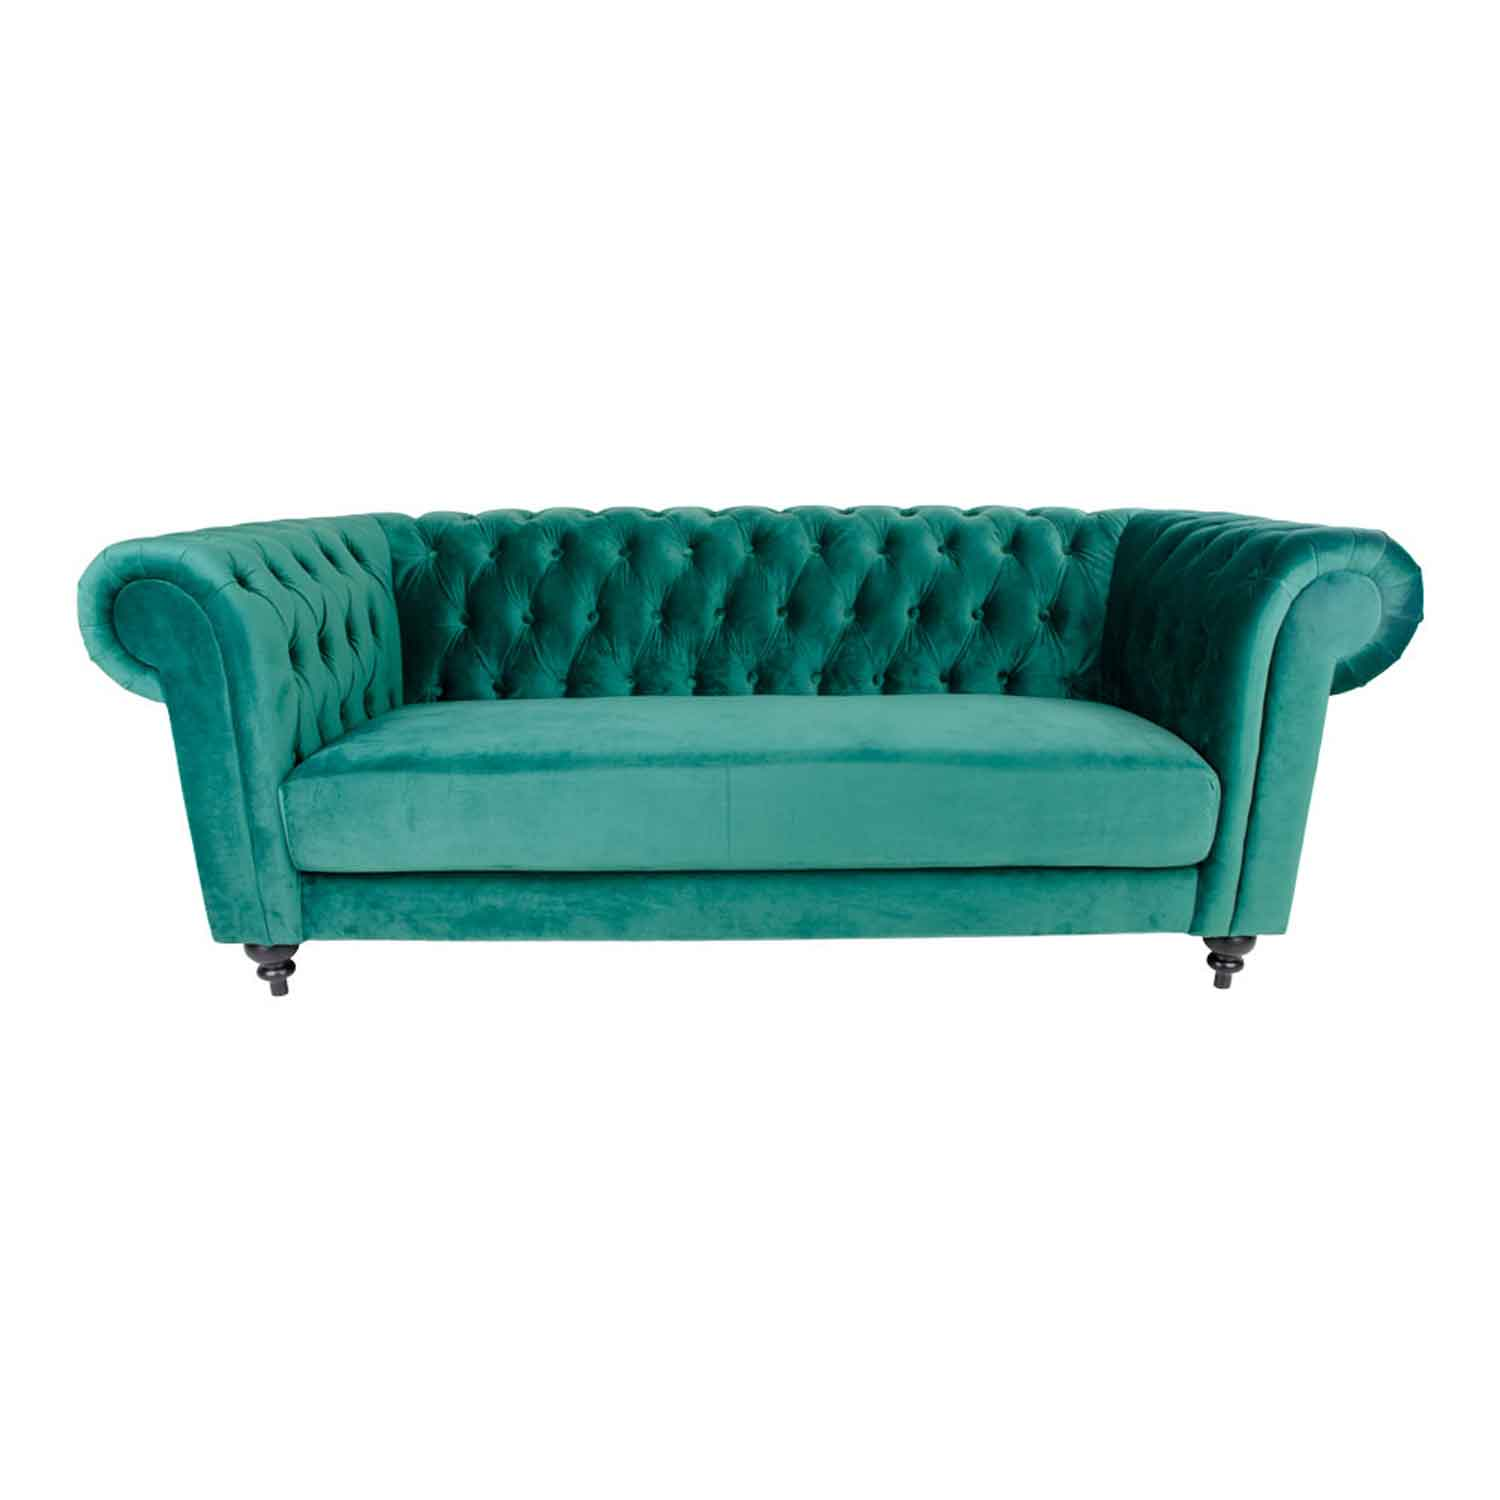 Image of   HOUSE NORDIC Chester 3-personers sofa - grøn velour/træ